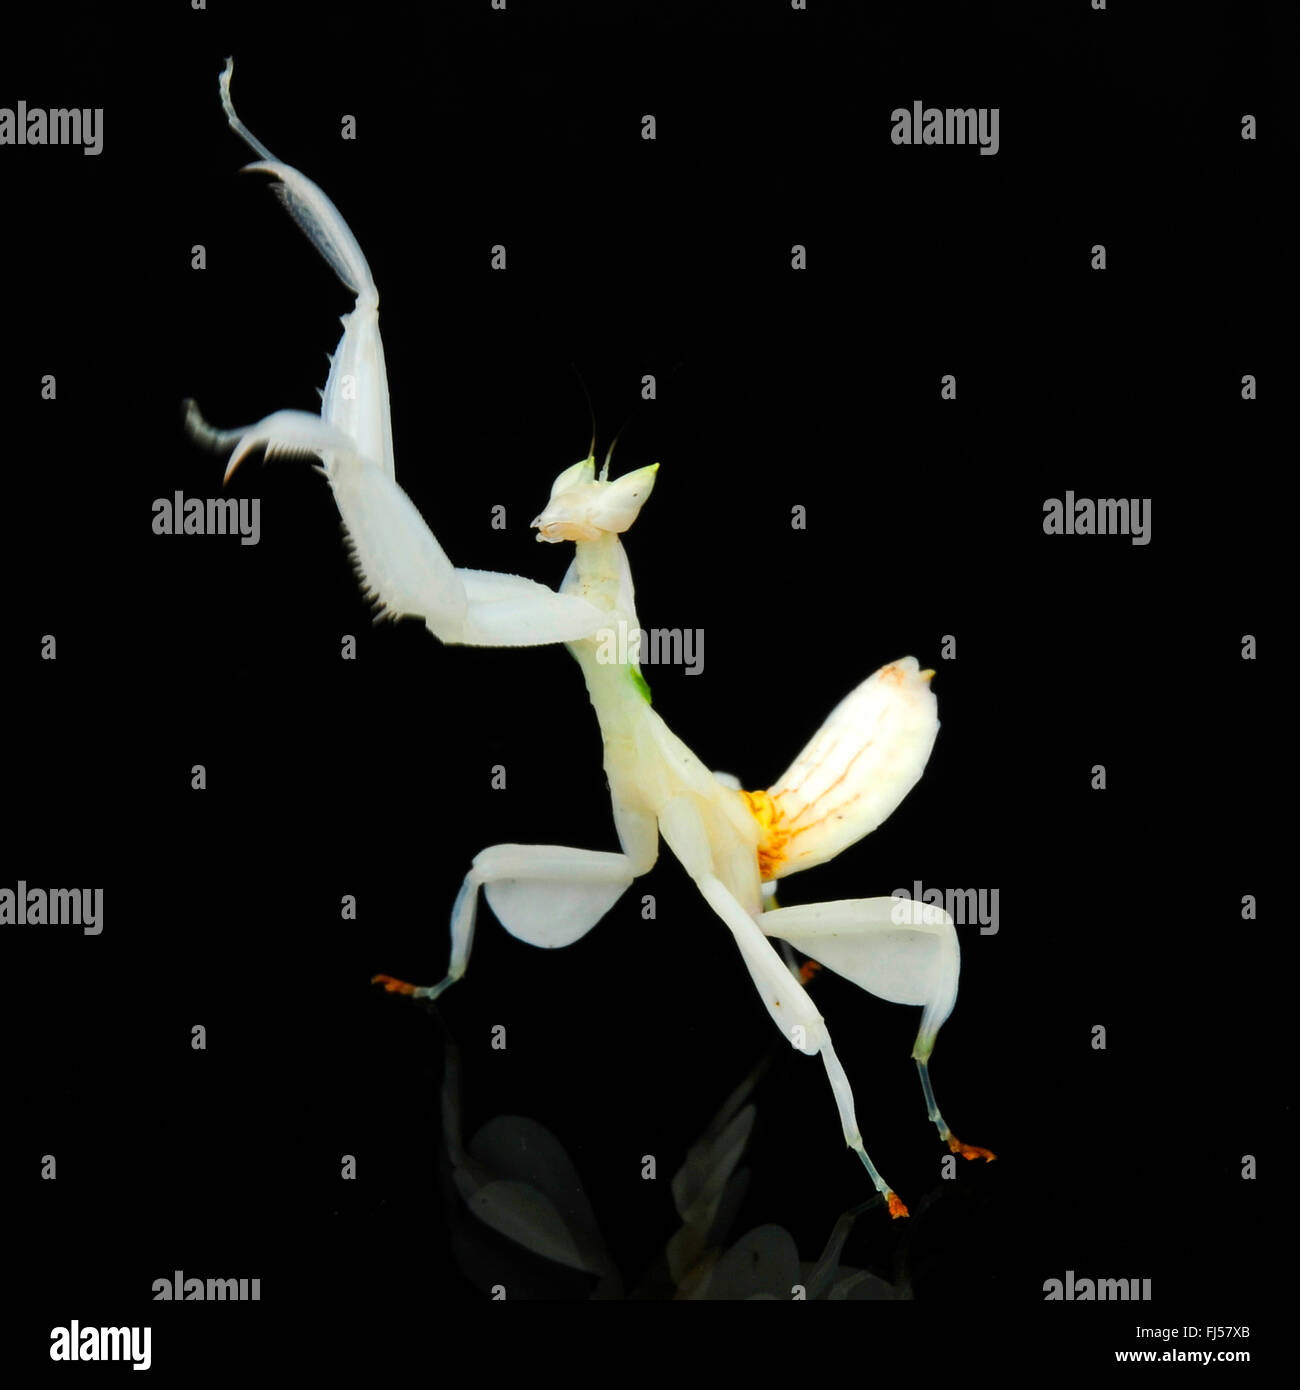 Walking flower mantis orchid mantis pink orchid mantis stock photo walking flower mantis orchid mantis pink orchid mantis hymenopus coronatus white mantis in front of black background dhlflorist Image collections